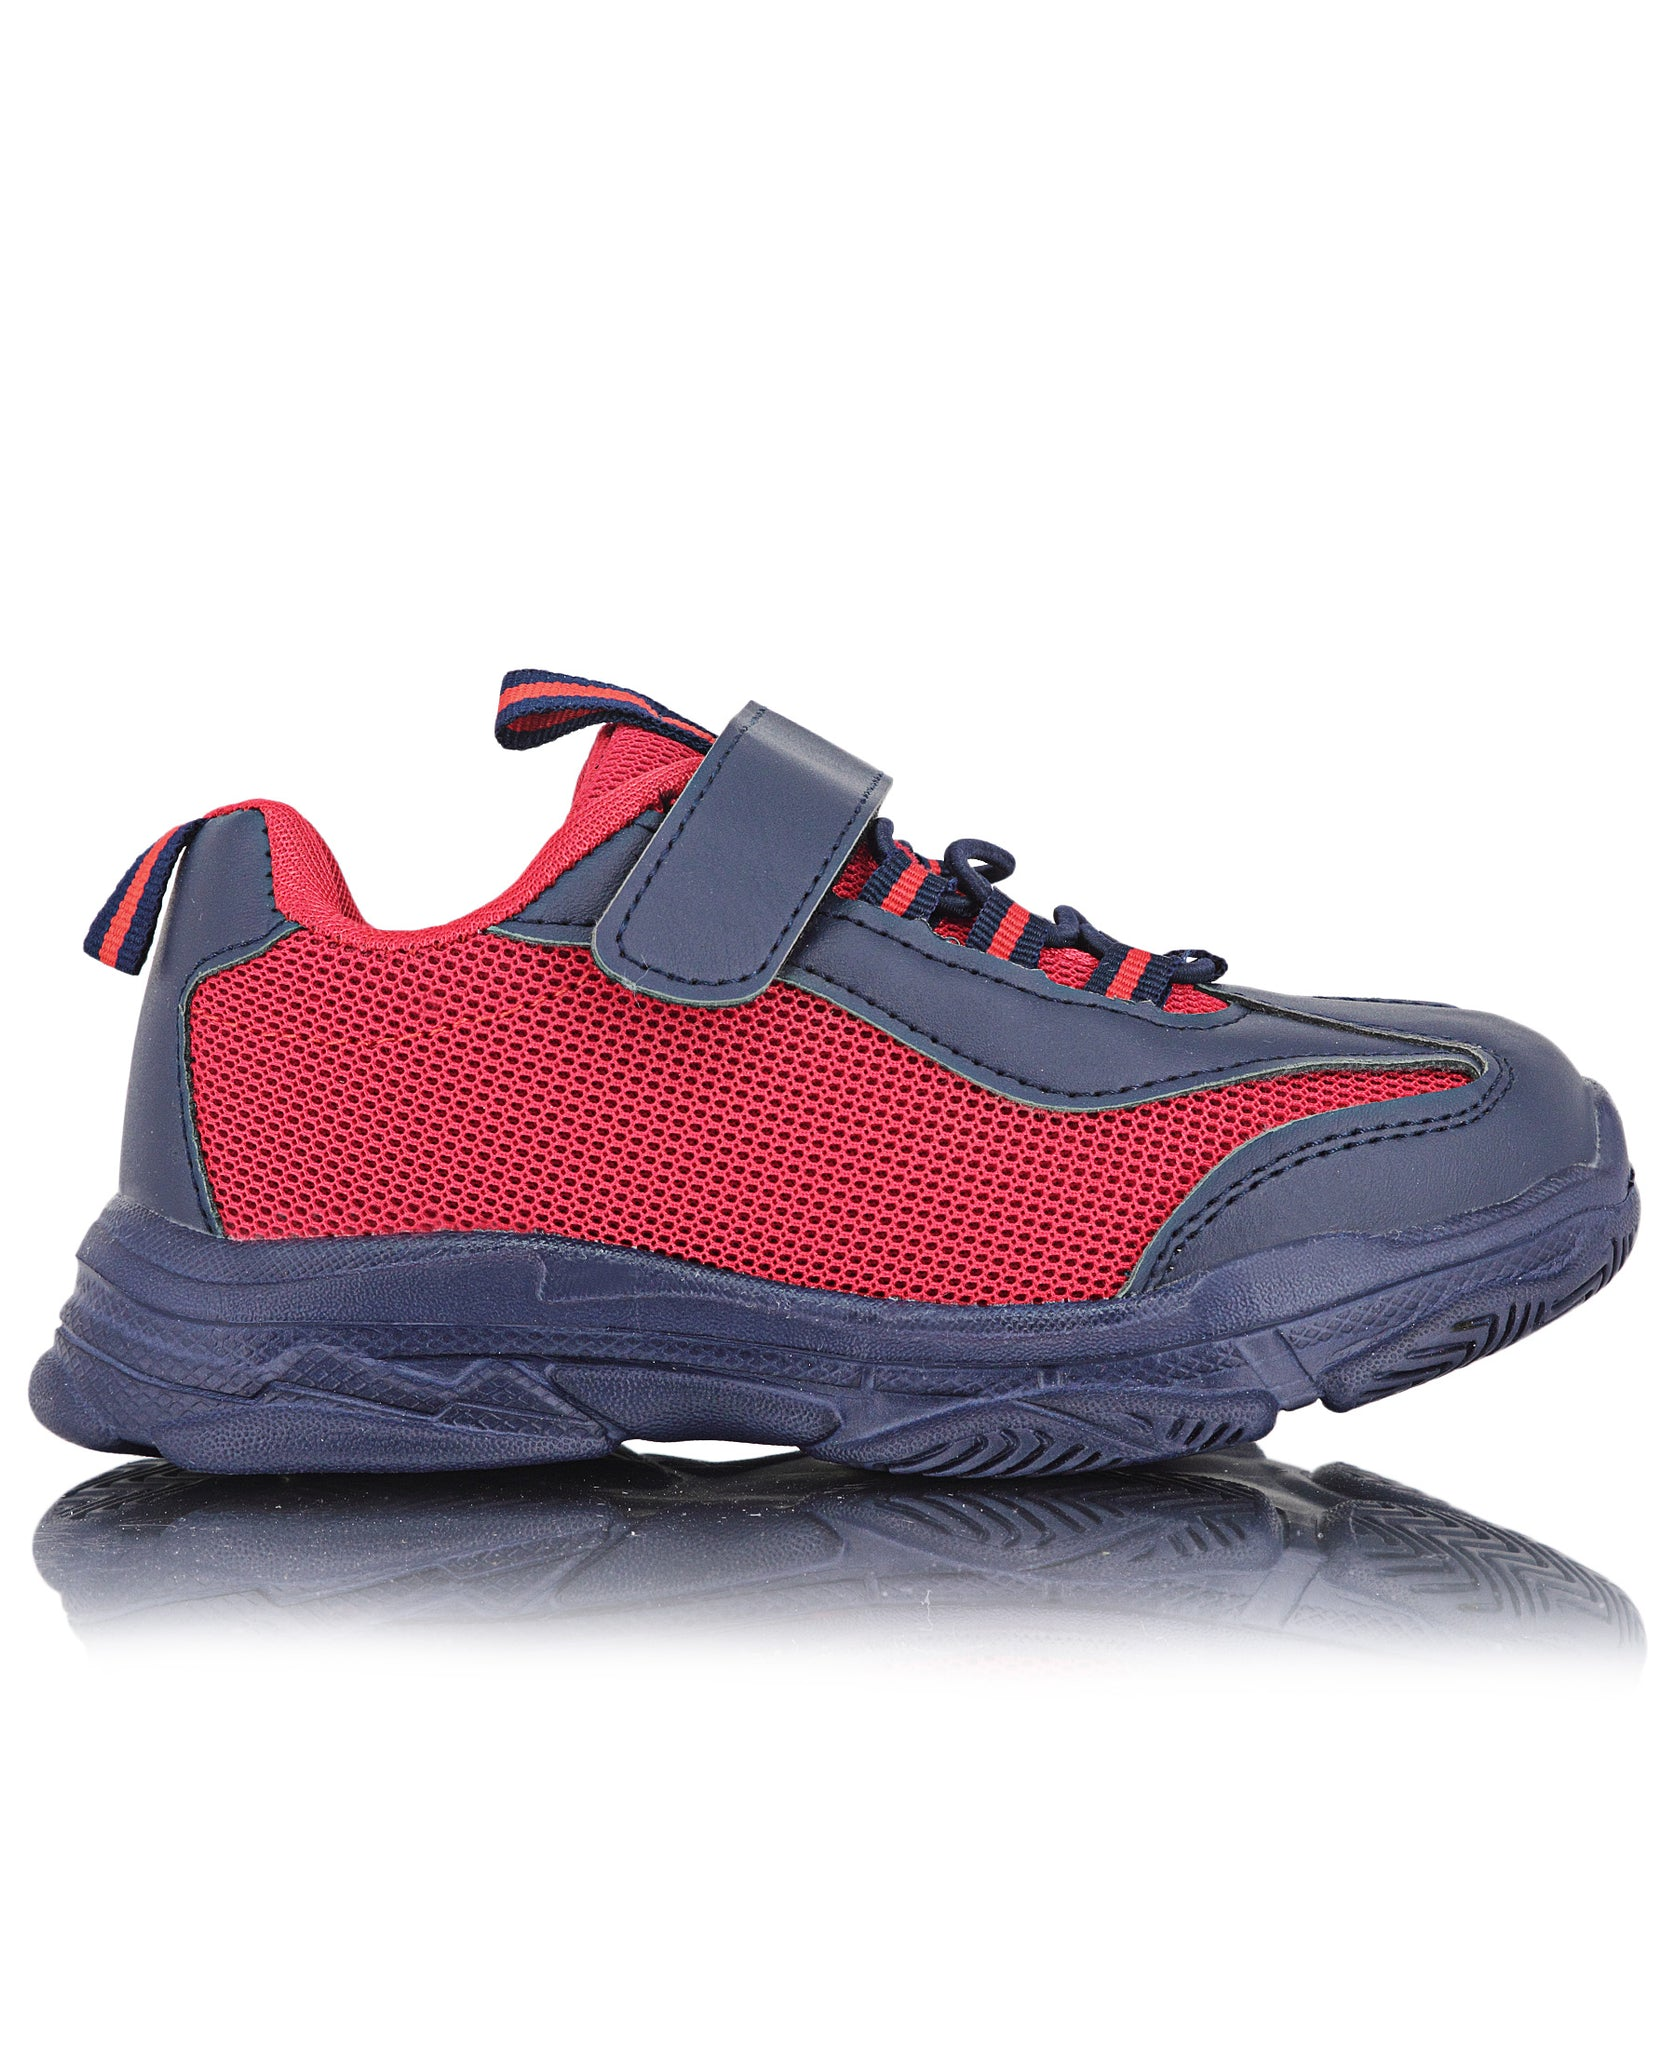 Boys Sneakers - Navy